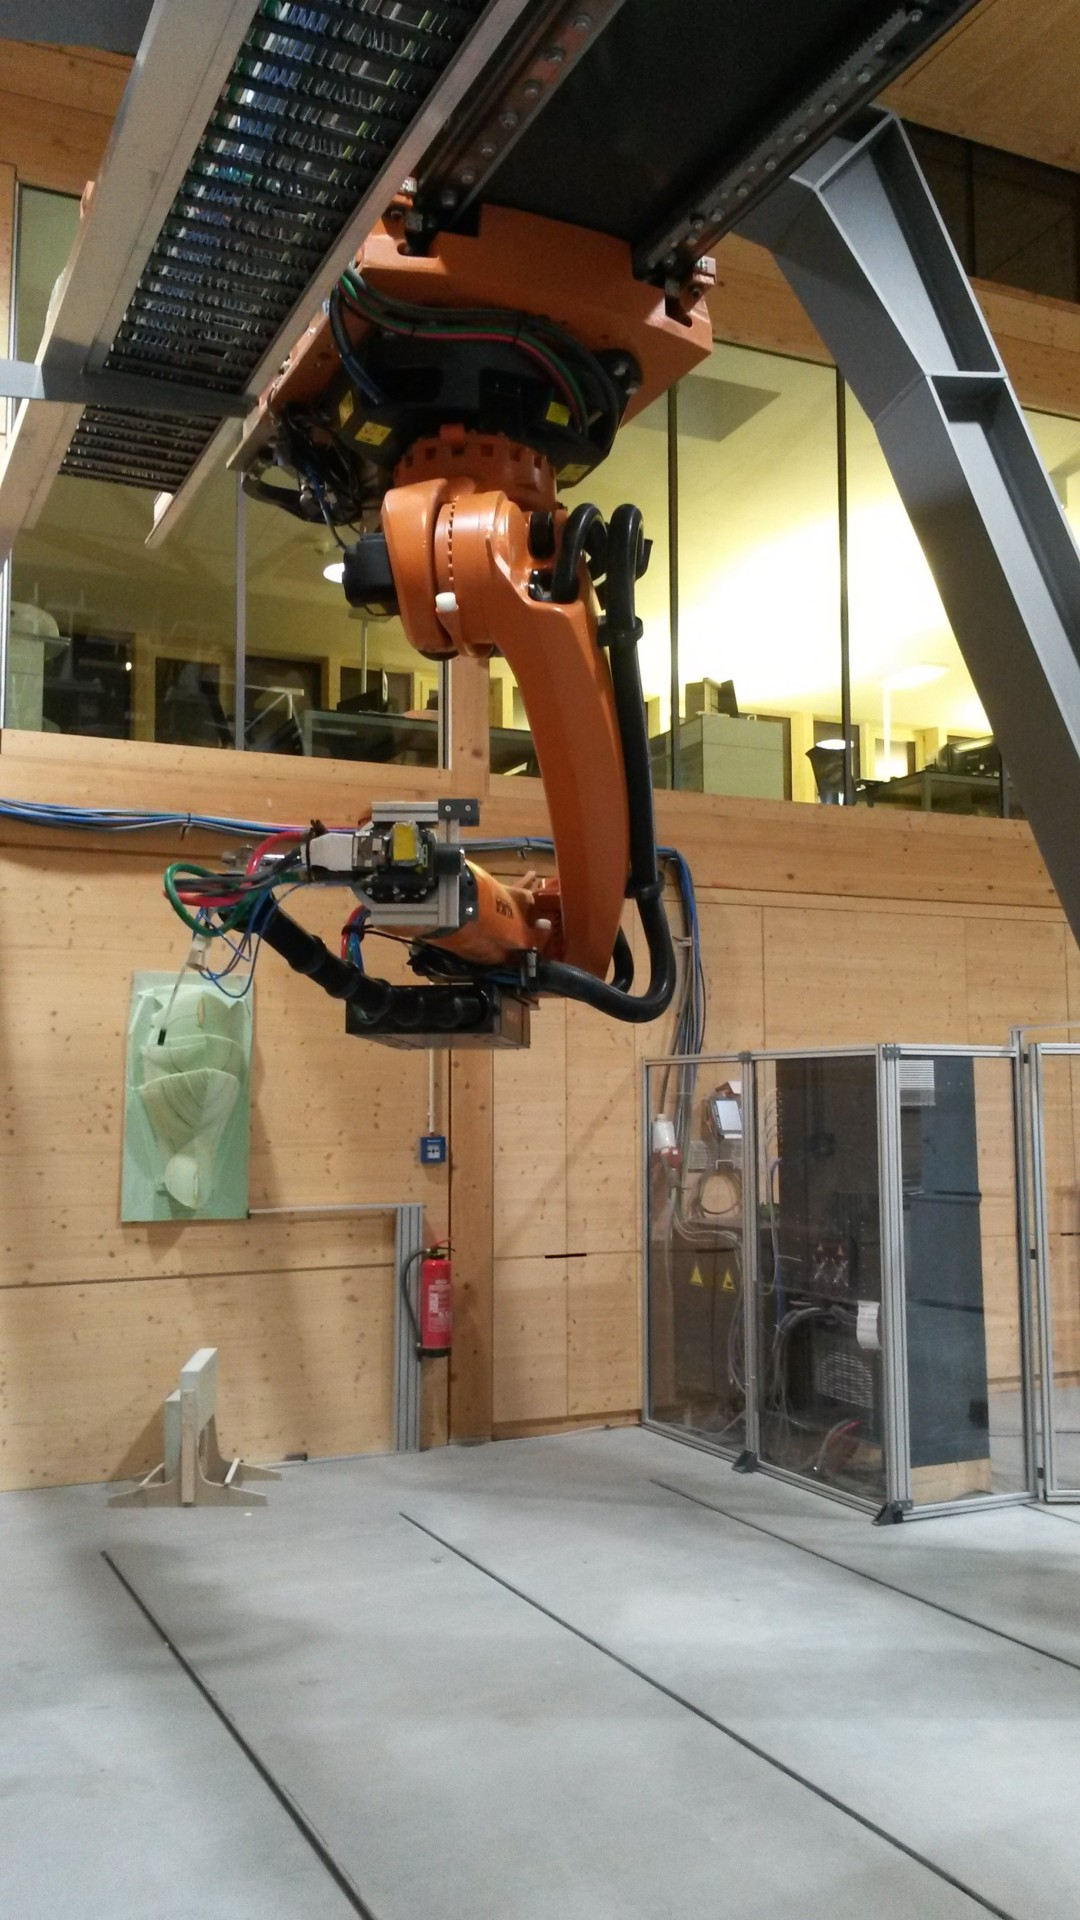 Installing A Kuka Quantec Ceiling Mounted Industrial Robot